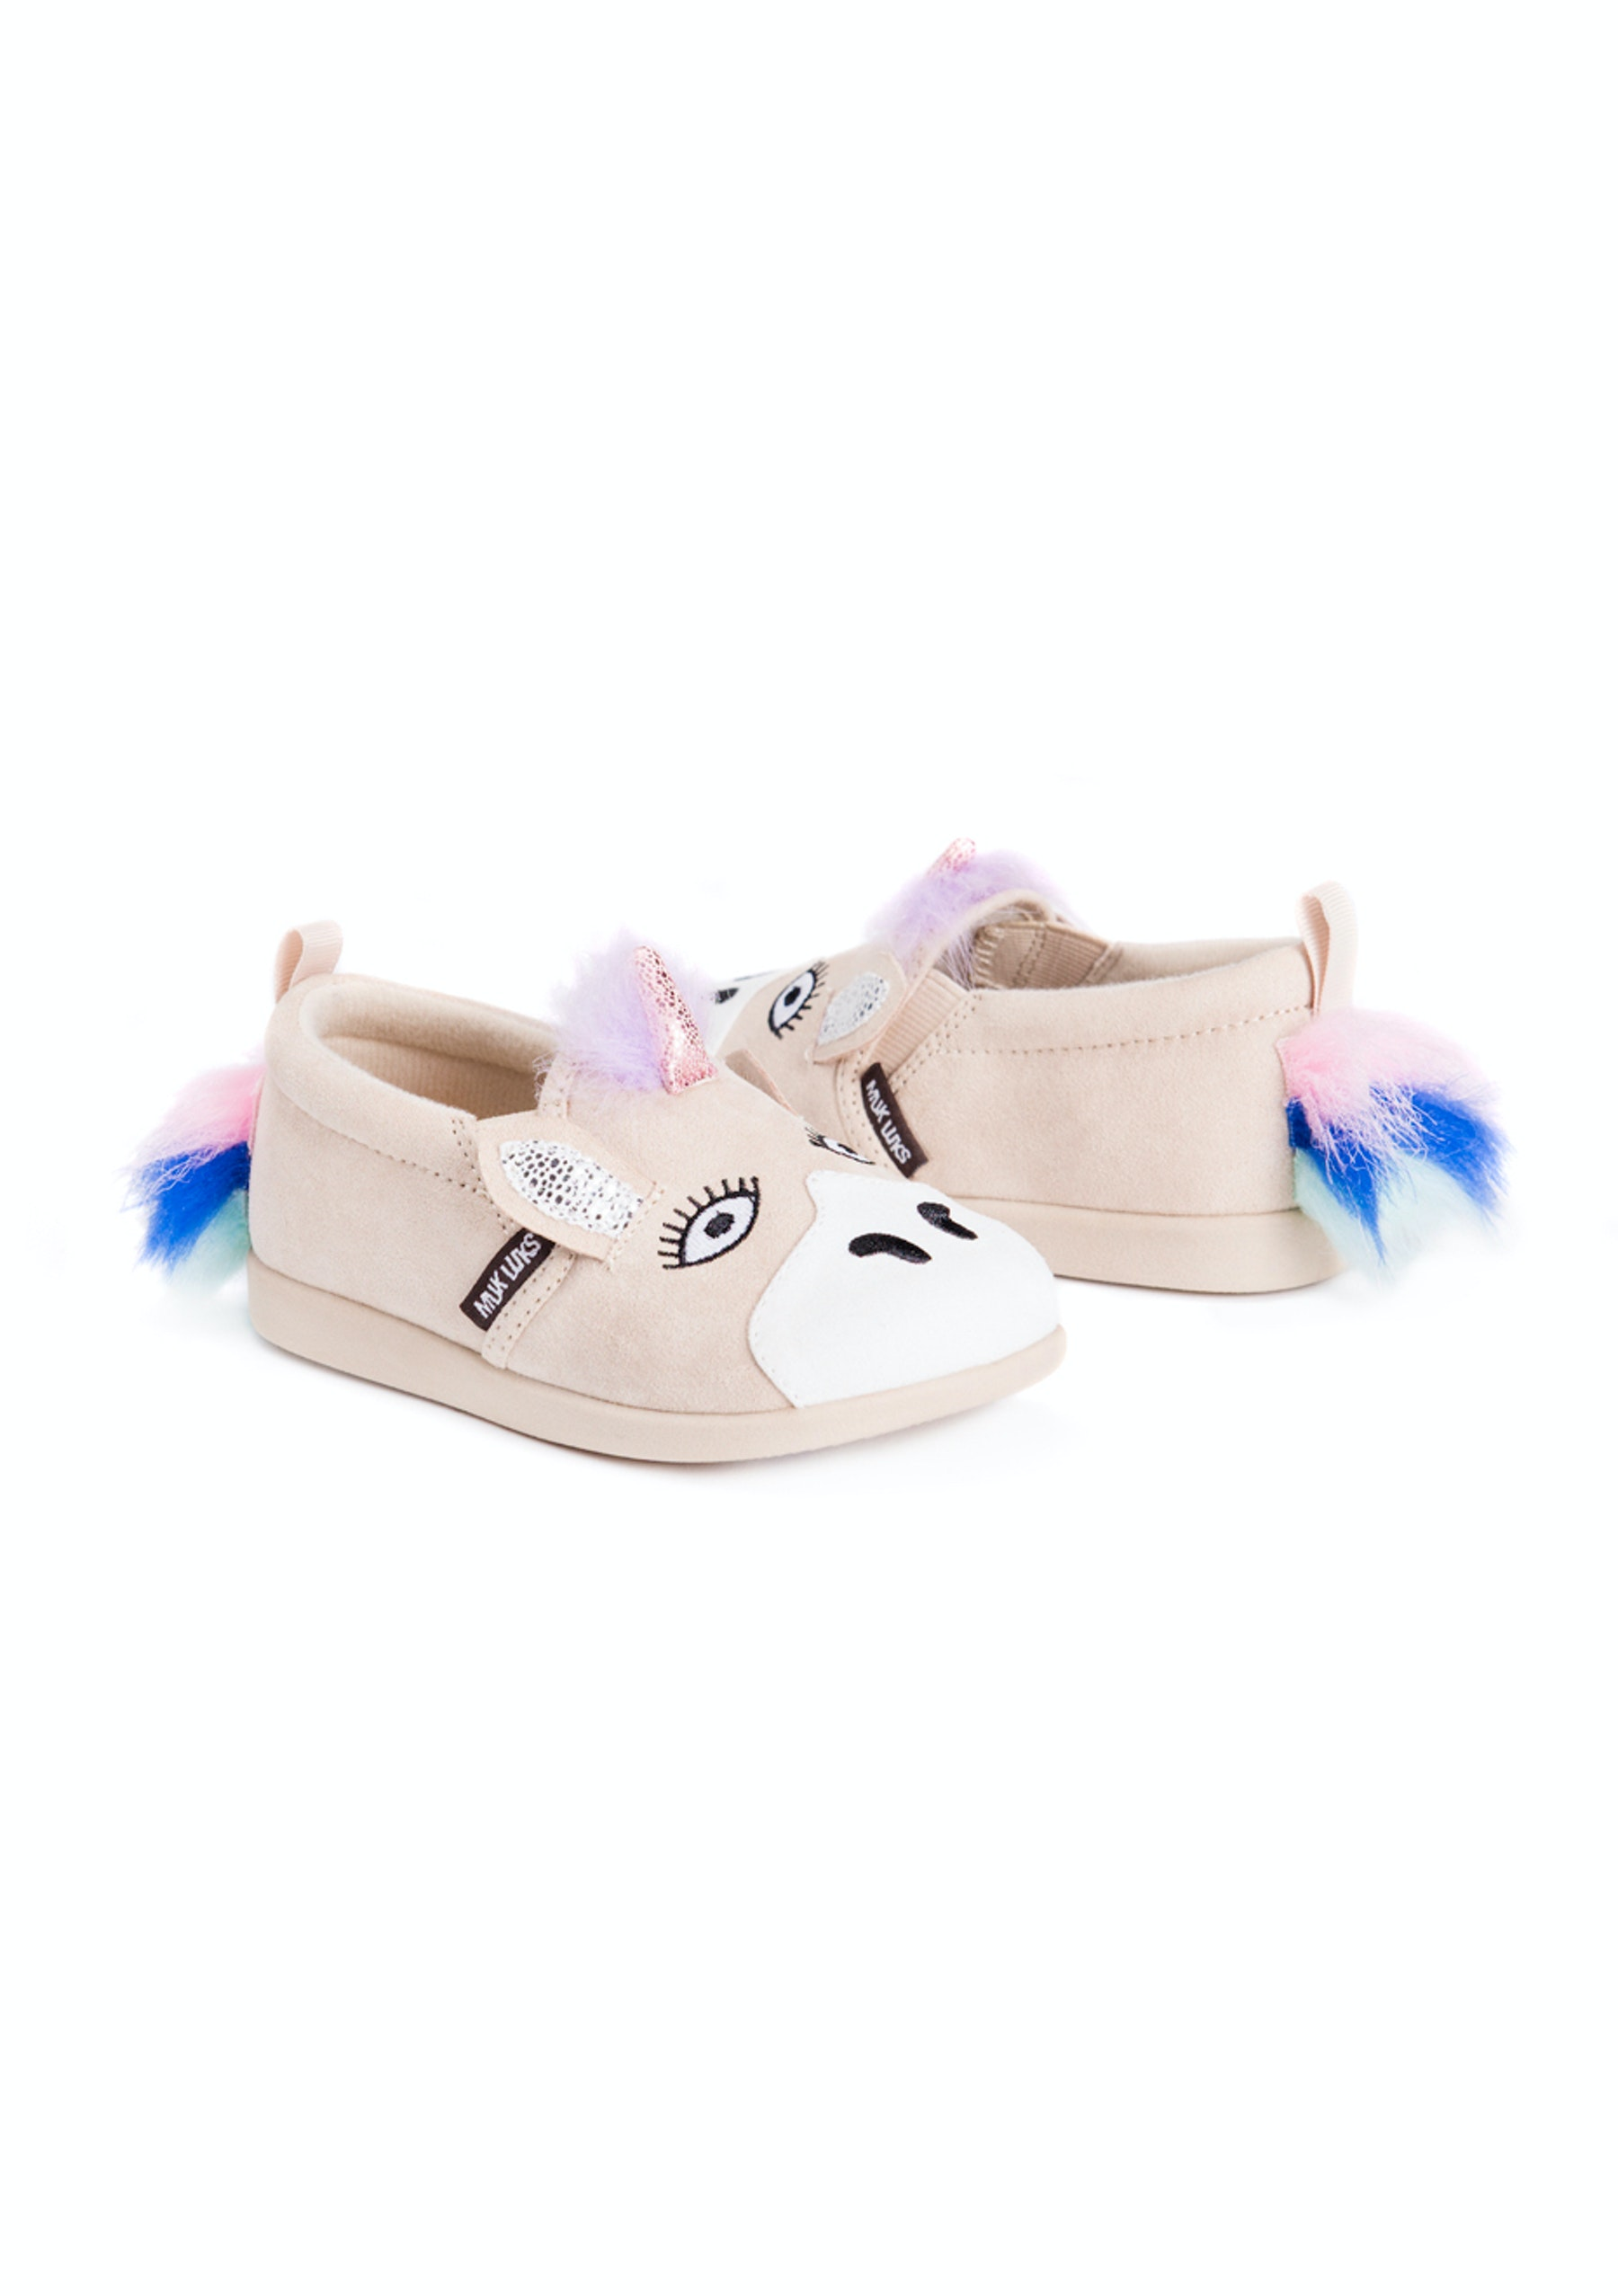 Muk Luks Zoo Baby Shoes Luna Unicorn Cozy Slippers for the Whole